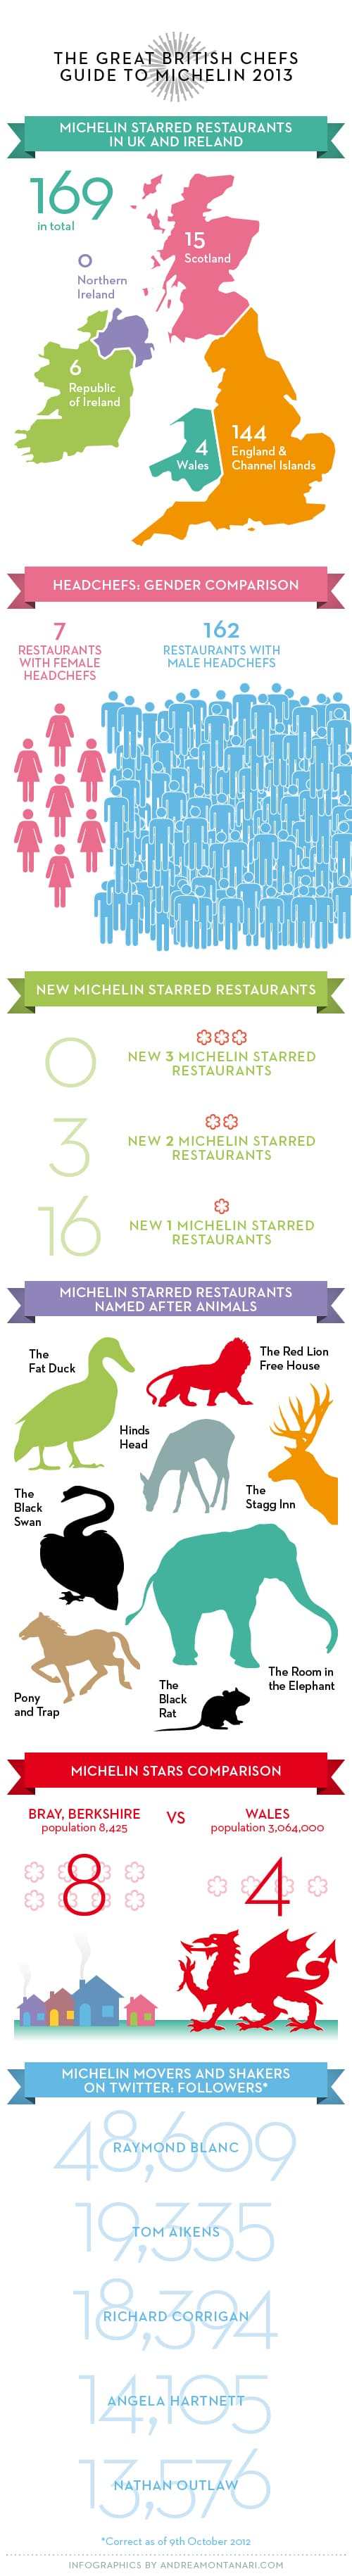 great british chefs guide to michelin 2013